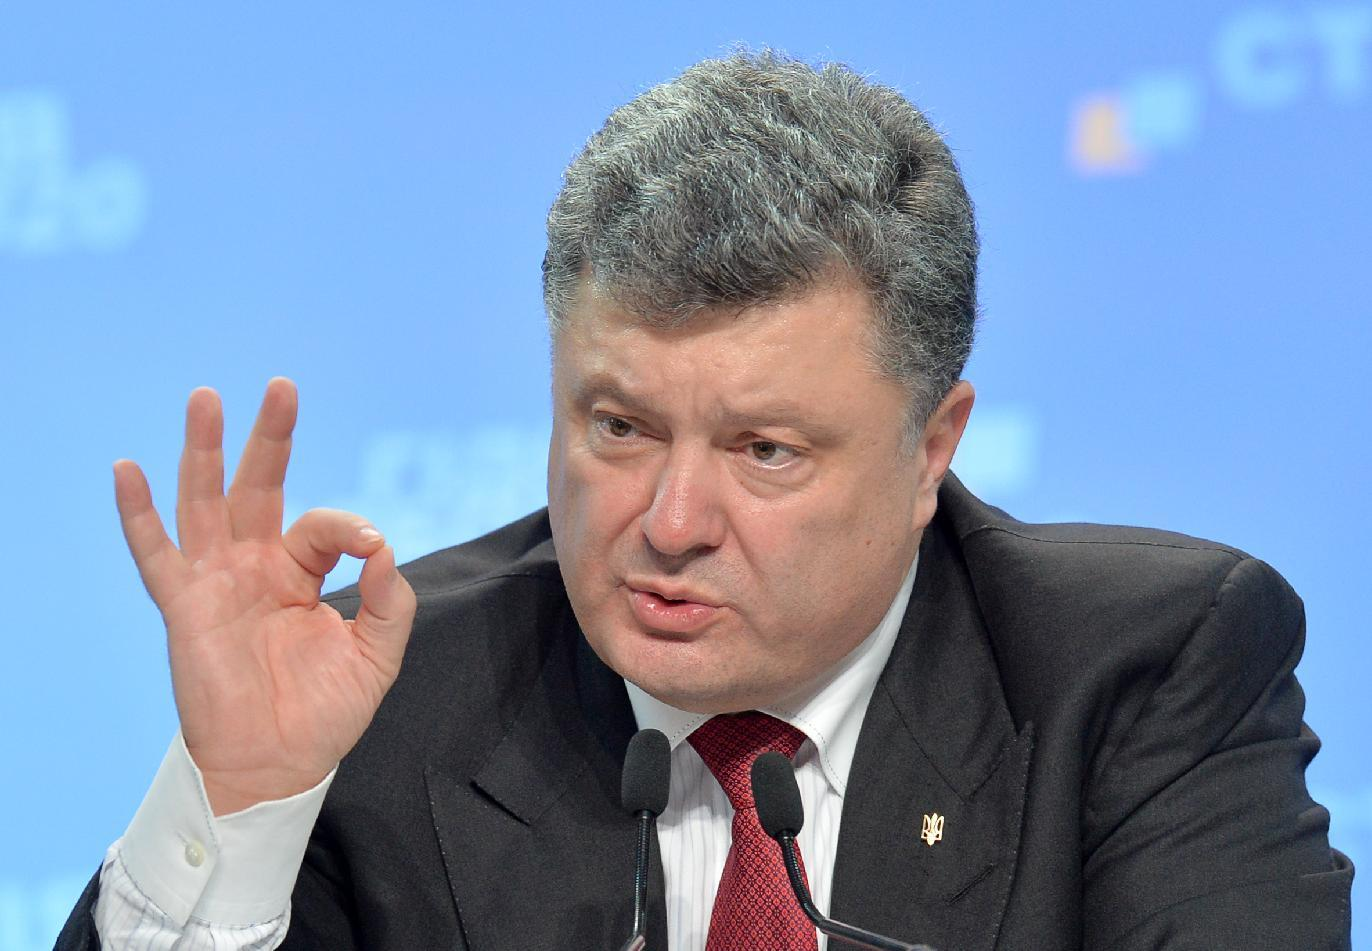 Ukrainian President Petro Poroshenko gestures as he answers questions during a press conference in Kiev, on September 25, 2014 (AFP Photo/Genya Savilov)